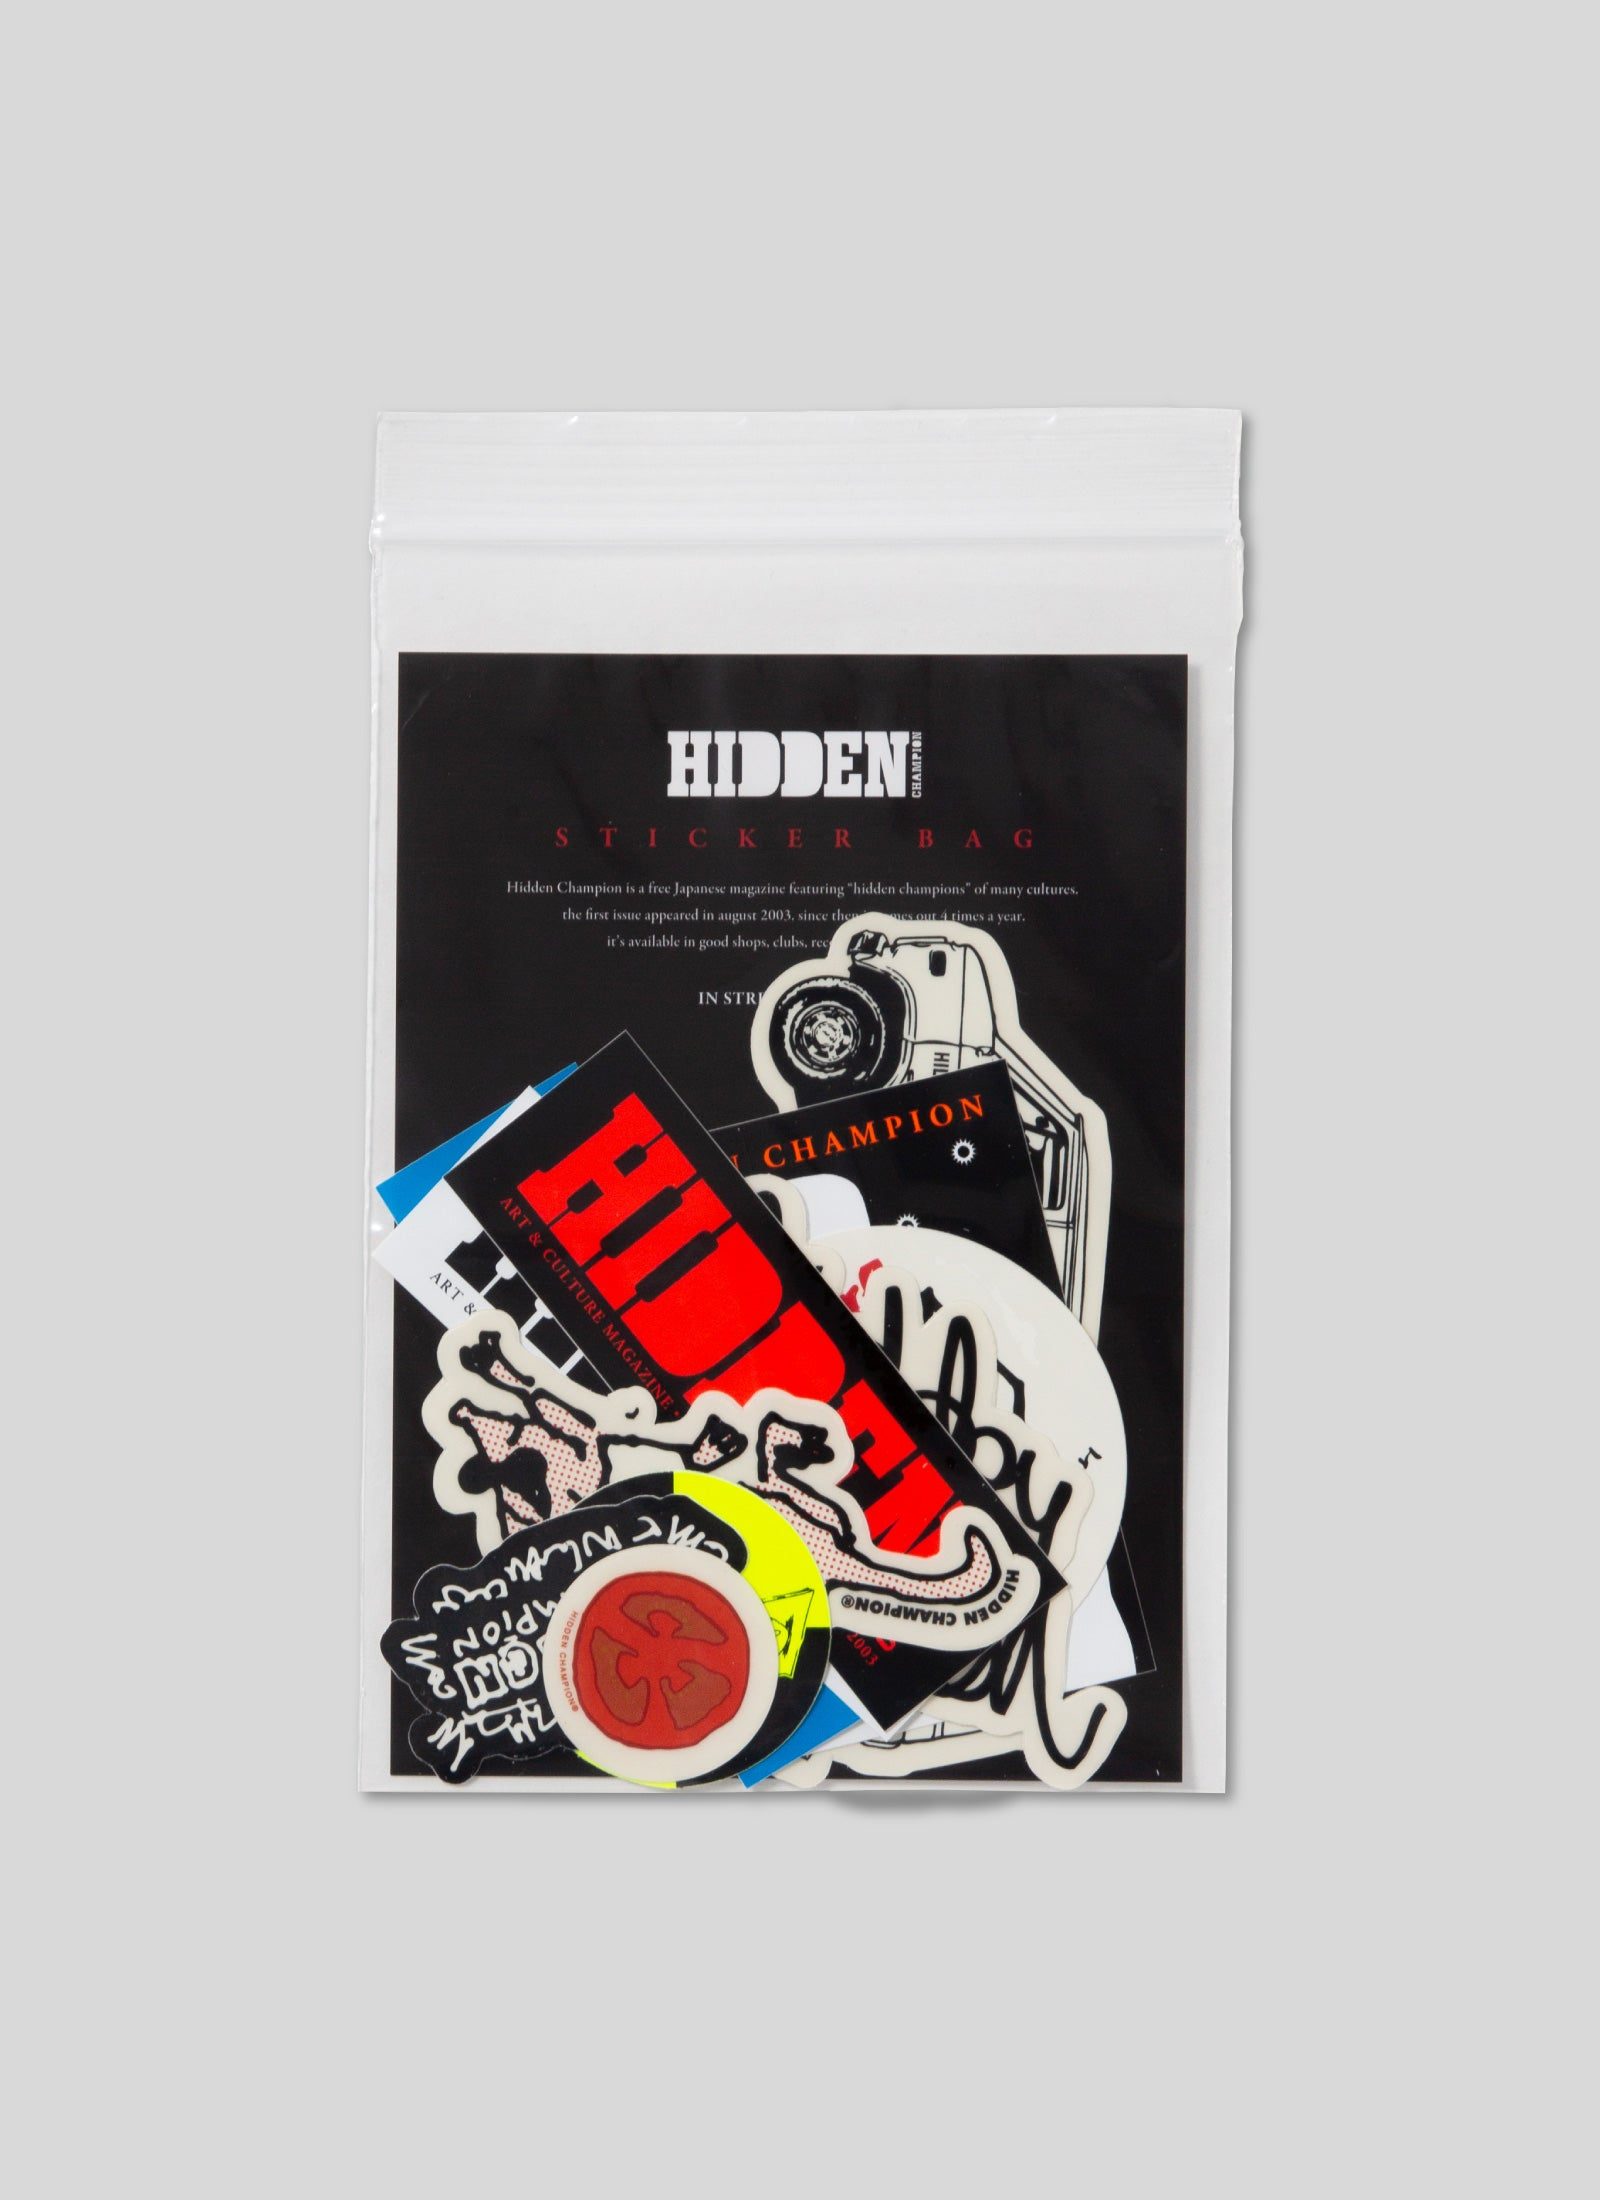 HIDDEN CHAMPION - Sticker Bag 2020